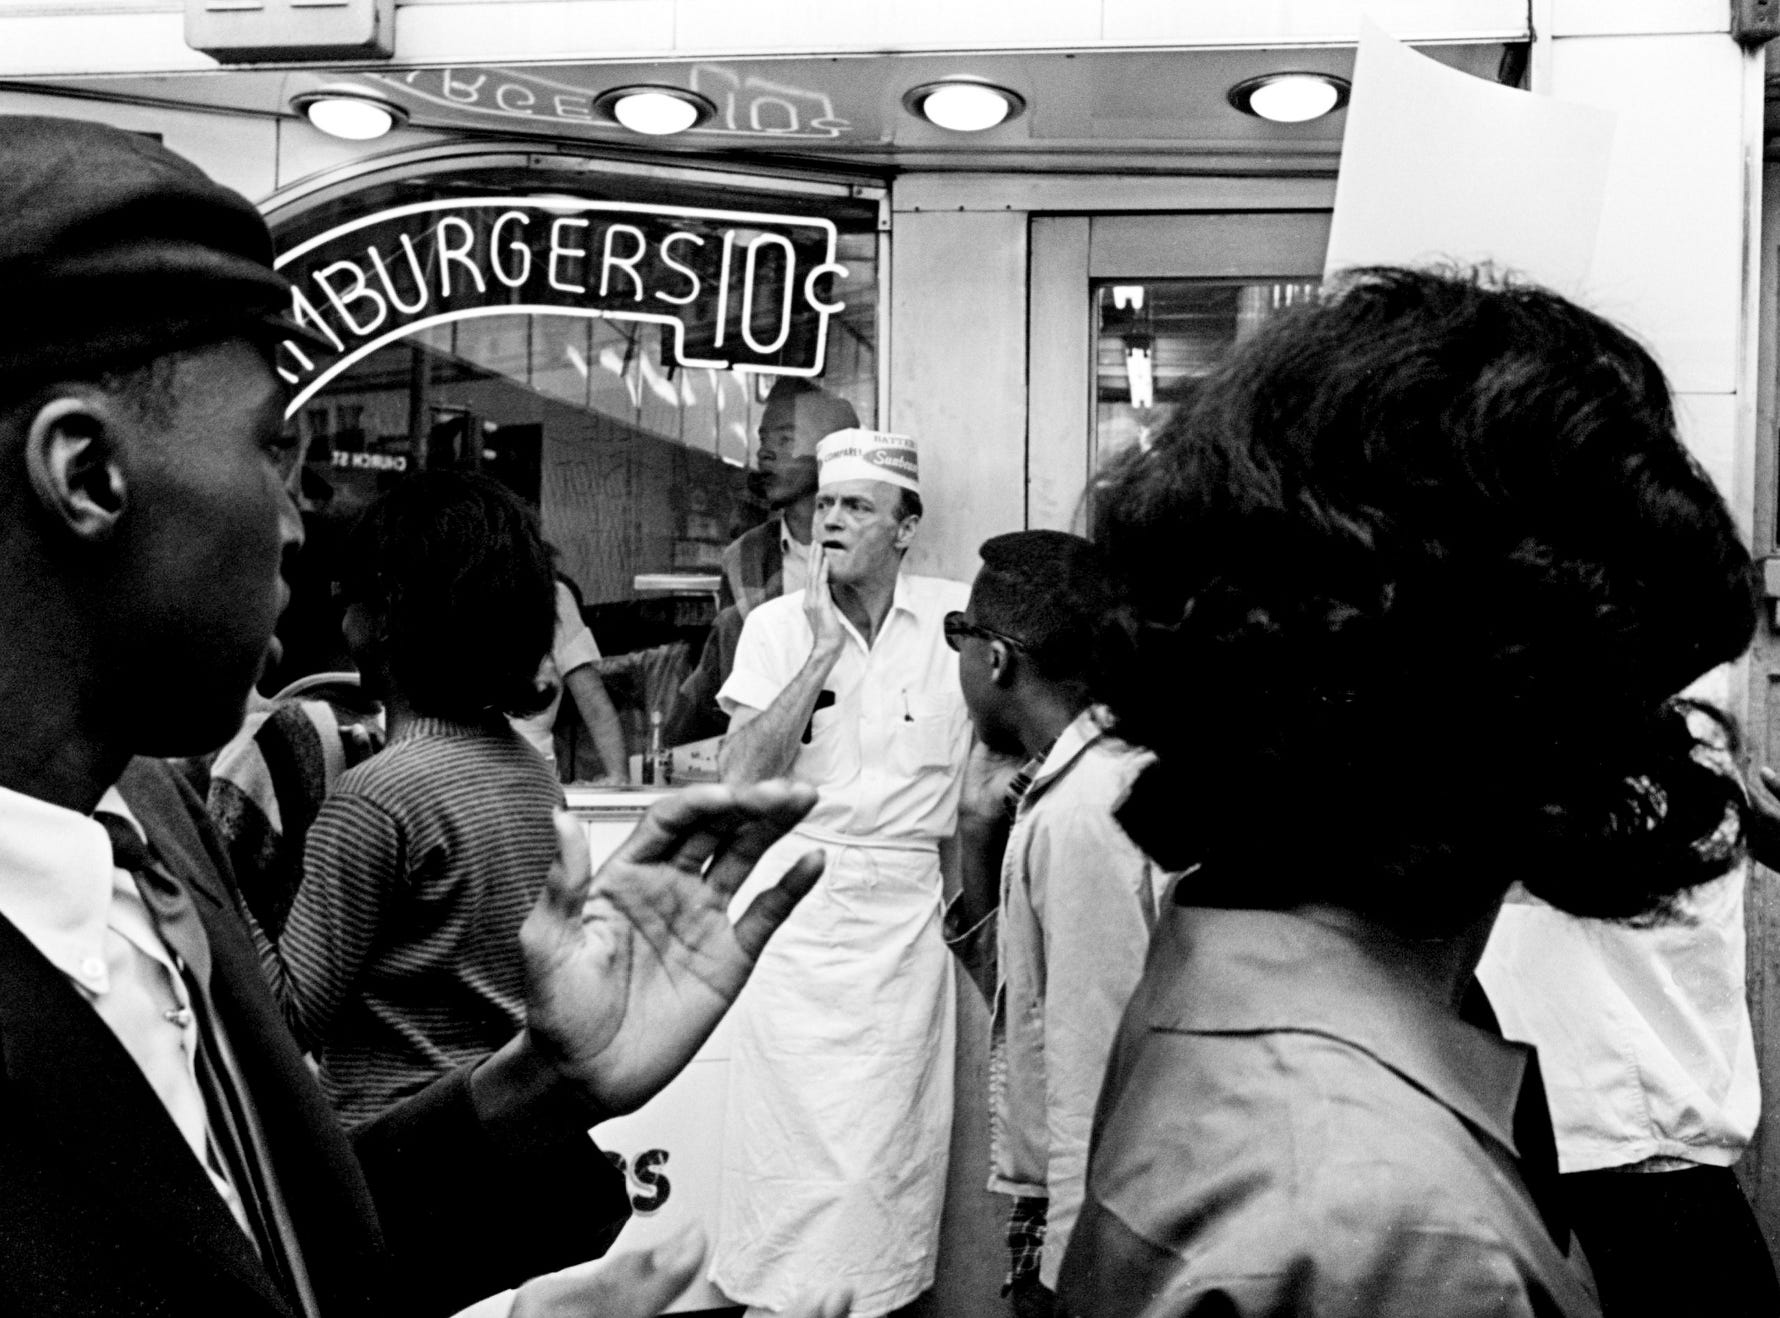 A Tic Toc Restaurant employee keeps an eye on one of the five groups of 25 demonstrators parading in front of the downtown store May 1, 1964. They marched in front of six segregated restaurants for two hours. Two of the marchers, John Lewis and Lewis Miller, were slightly injured during a scuffle in front of the store.